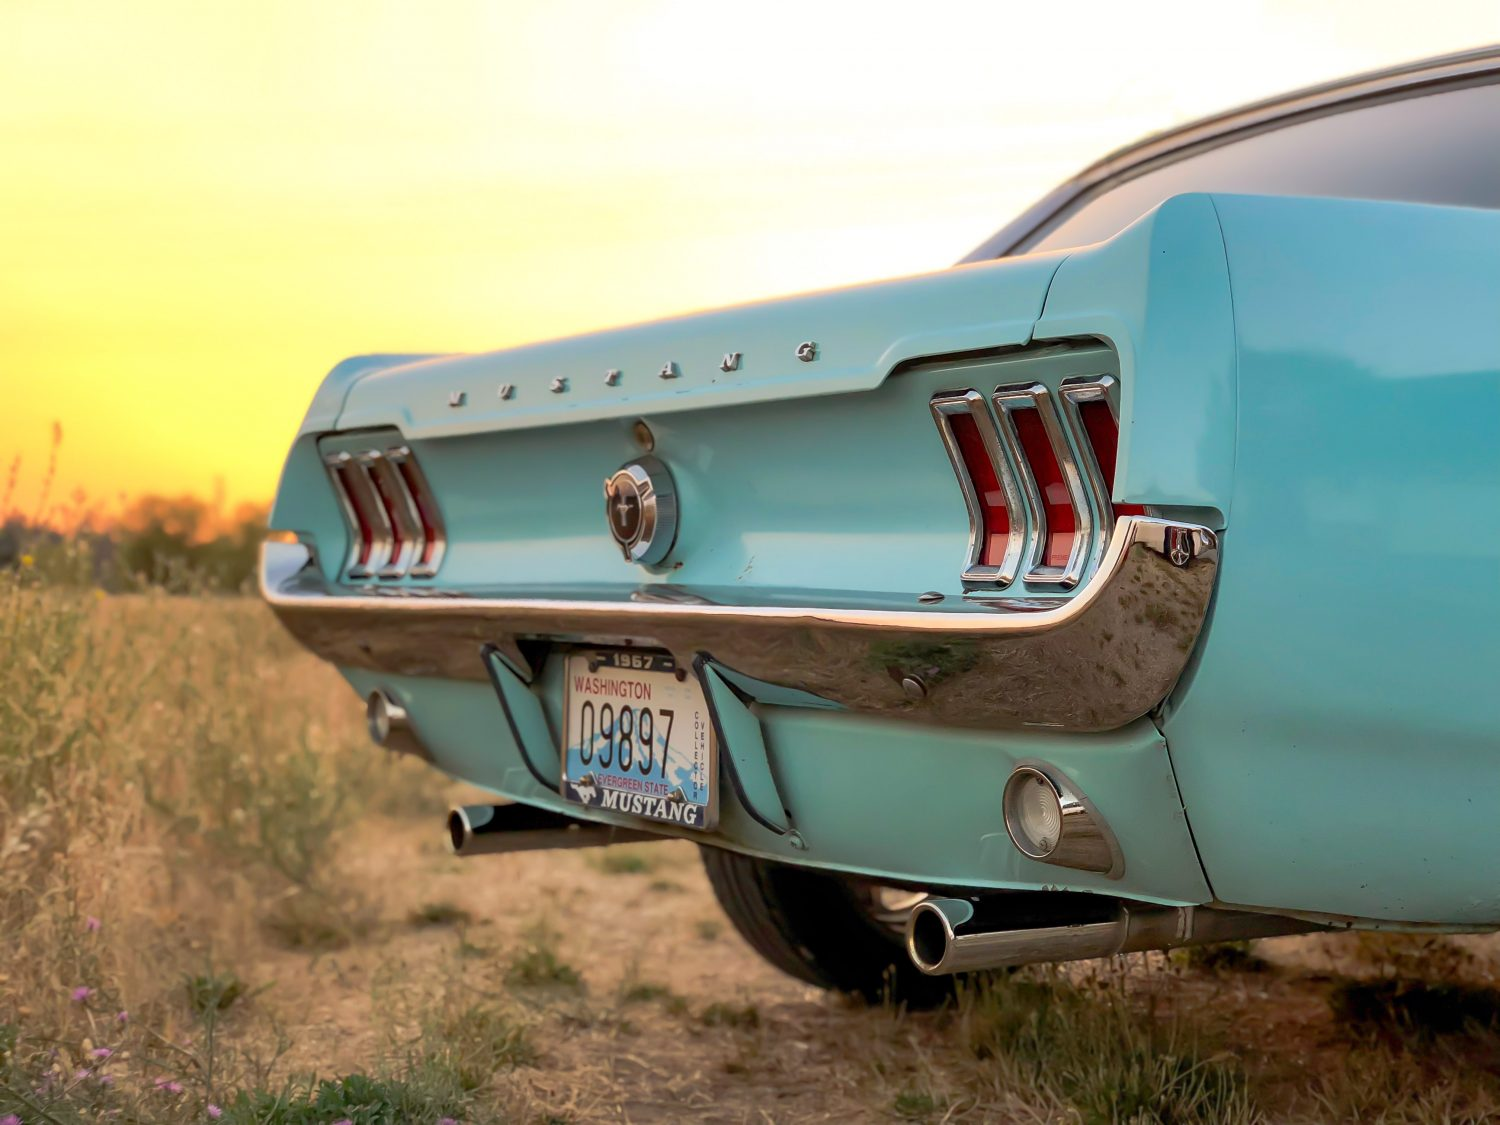 1967 Mustang Rear End